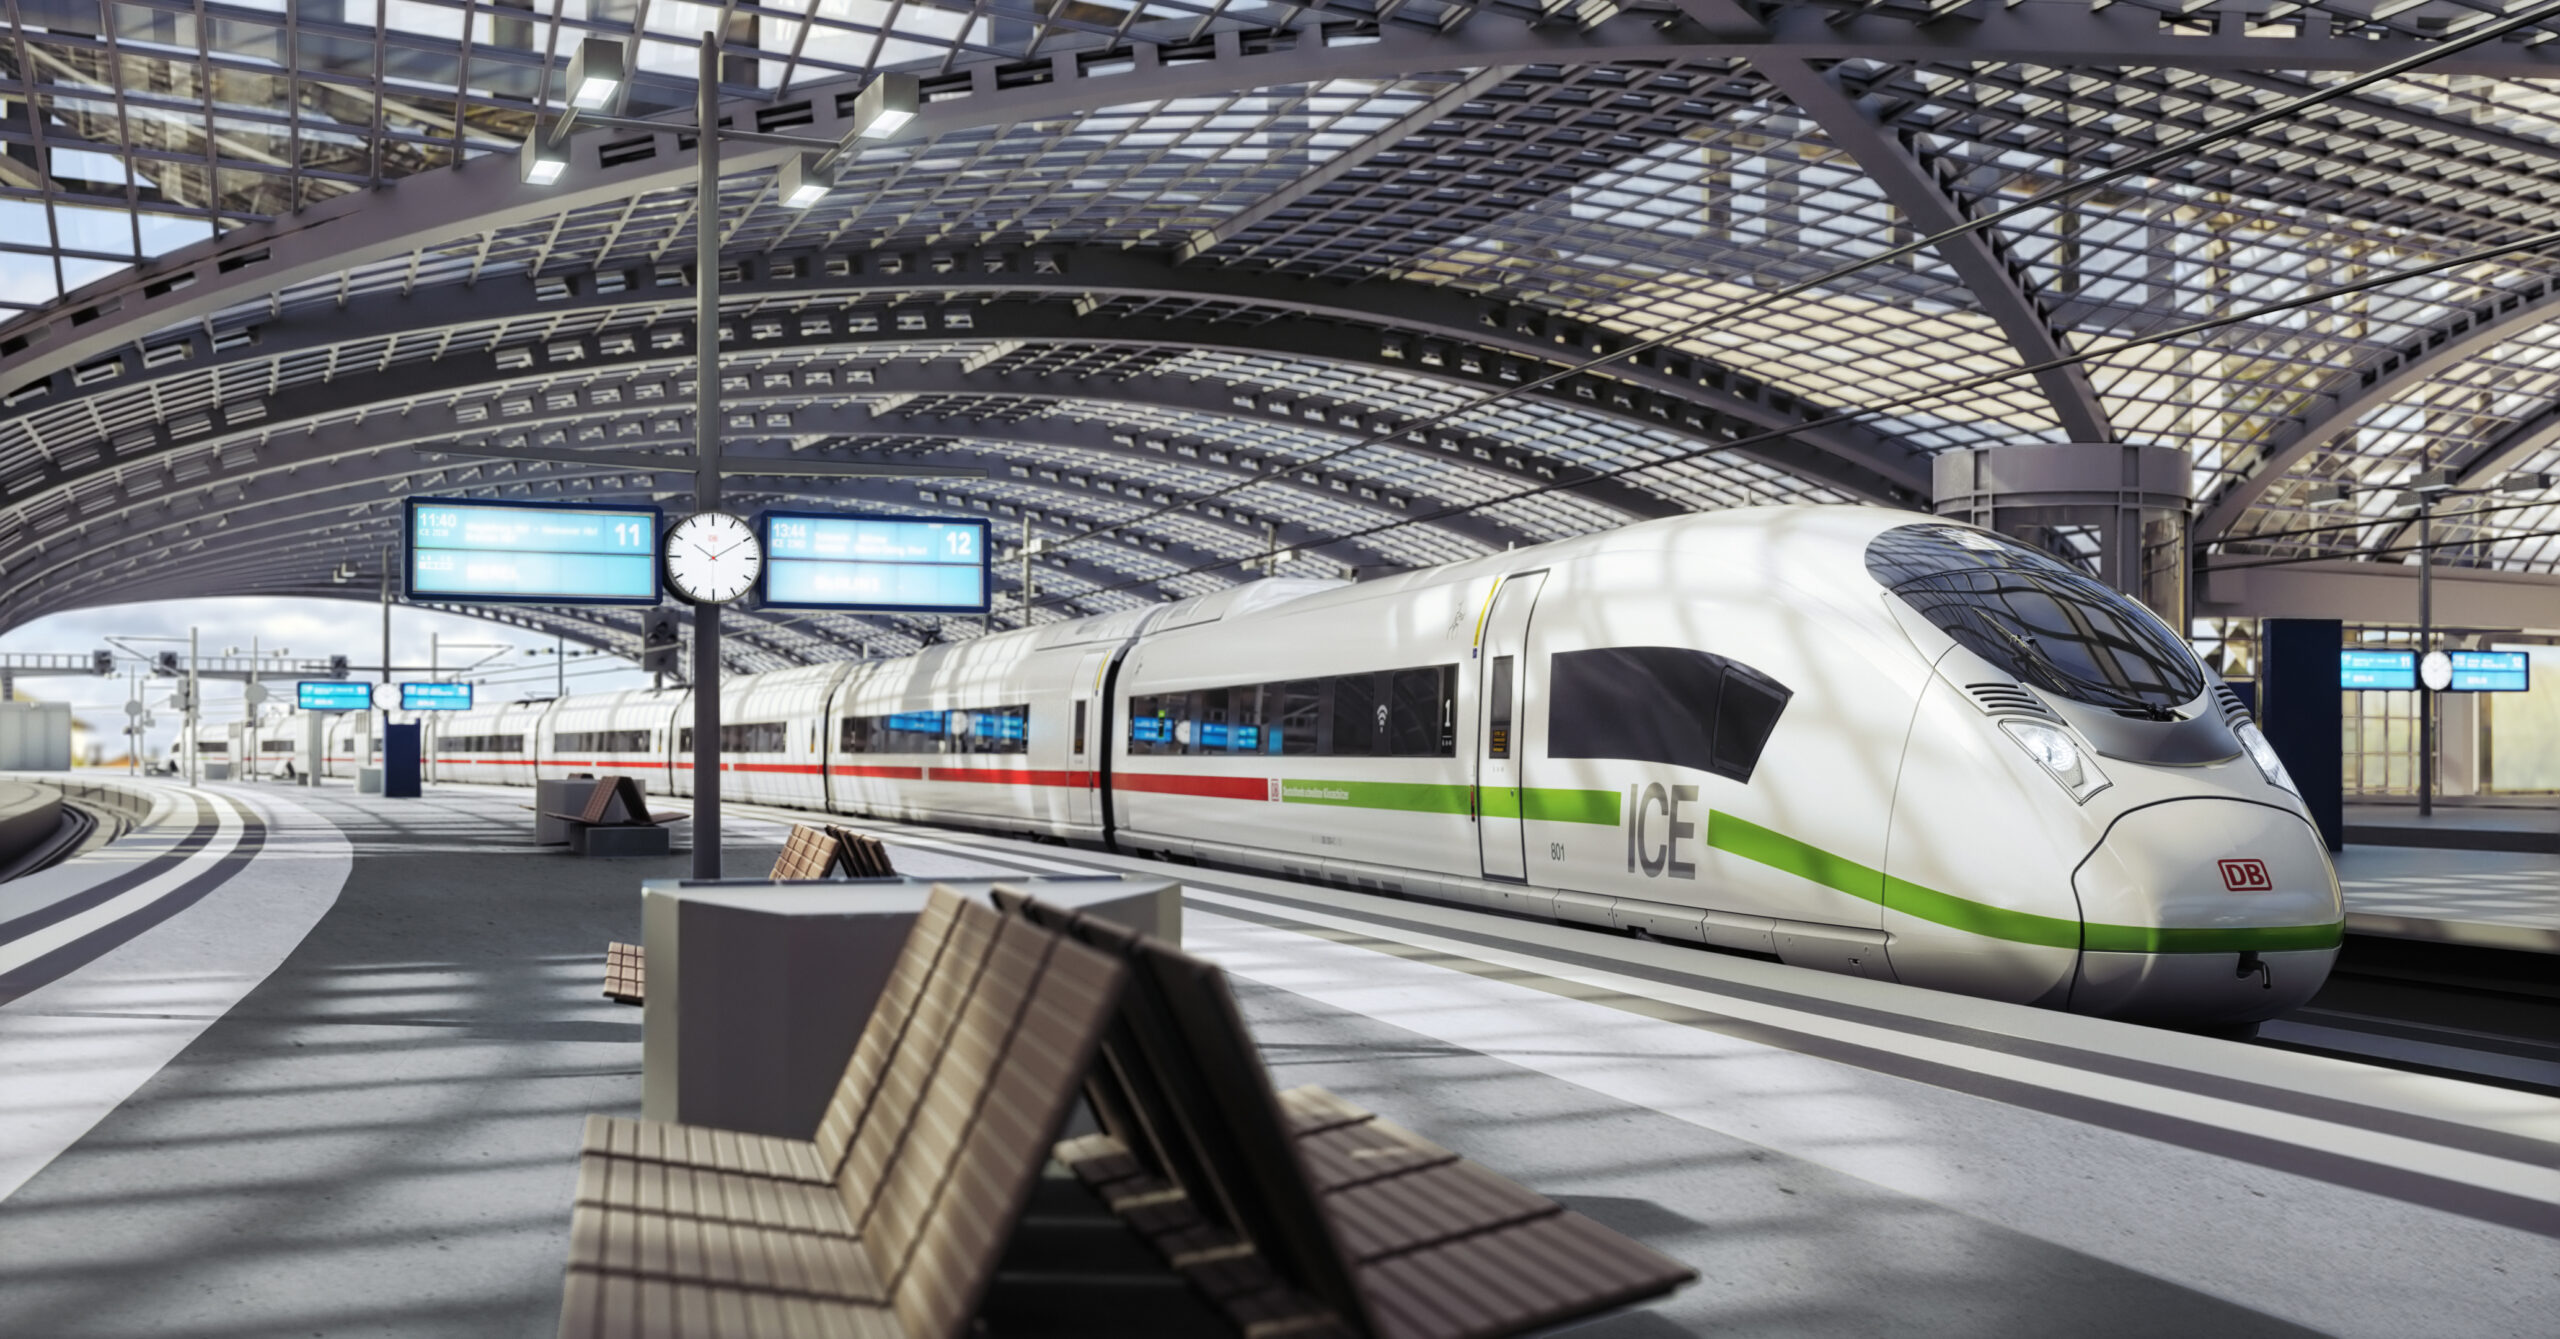 New ICE train for DB to be manufactured by Siemens Mobility